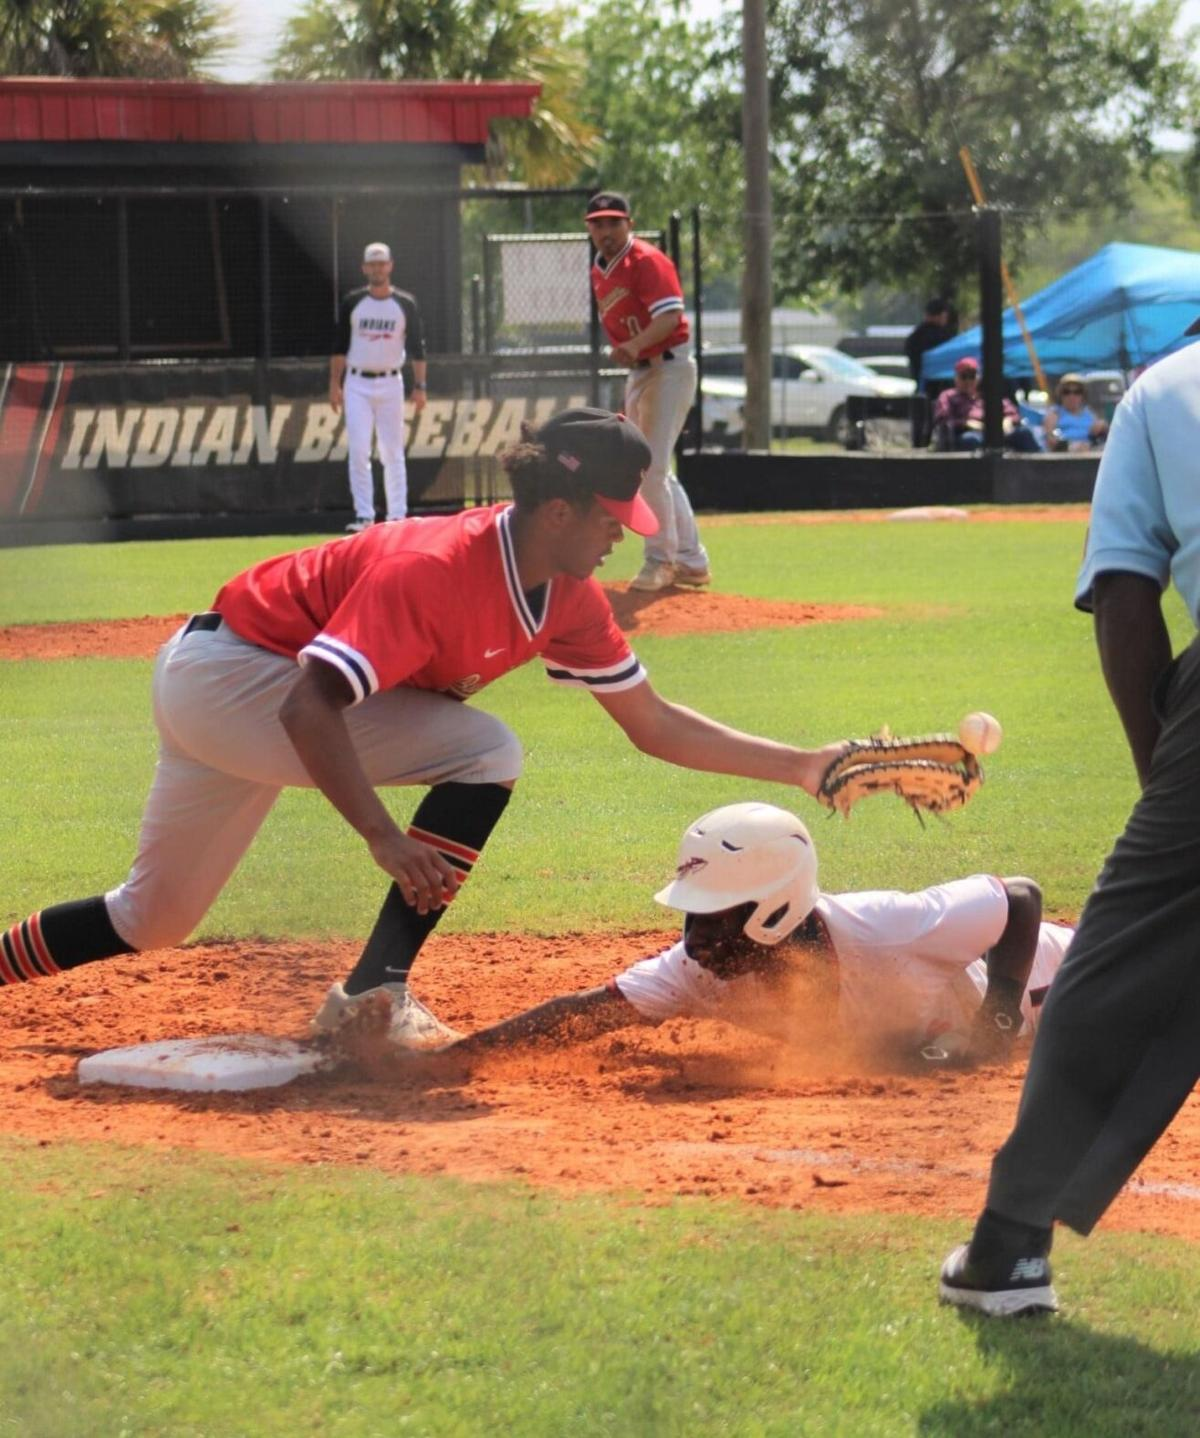 Tribe advances to second round after sweep of MCA